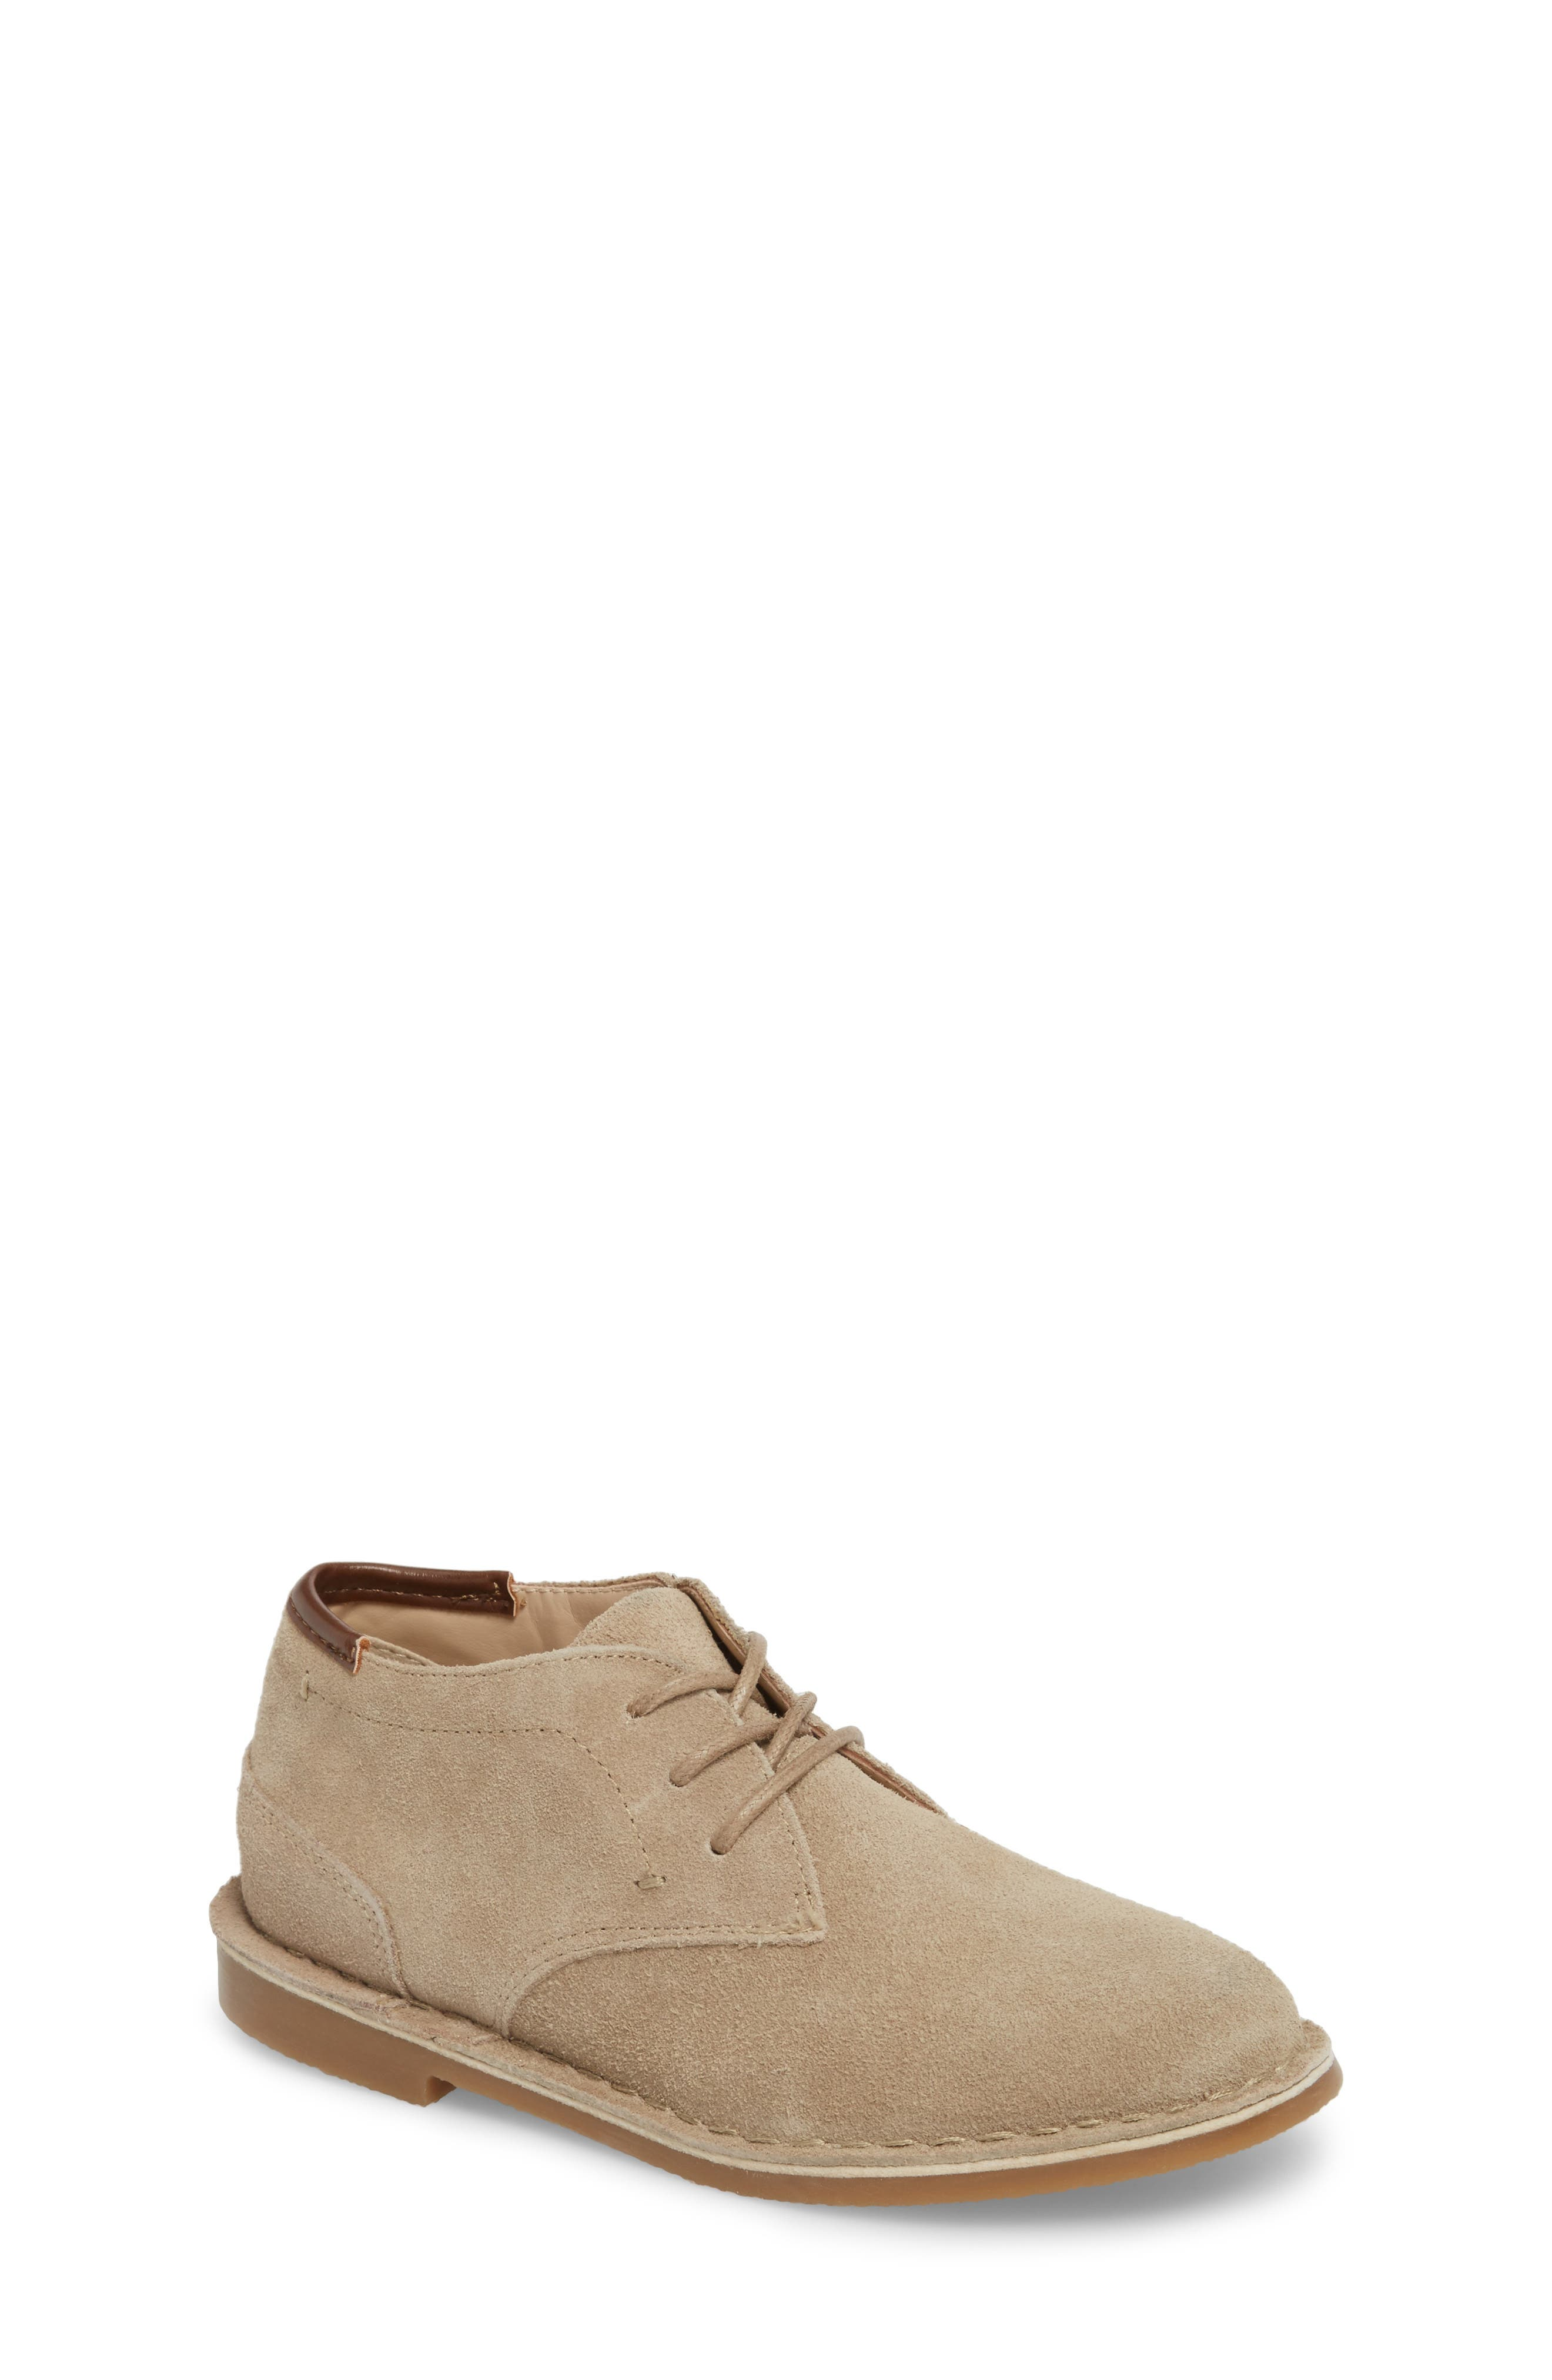 Alternate Image 1 Selected - Kenneth Cole New York Real Deal Chukka Boot (Walker, Toddler, Little Kid & Big Kid)